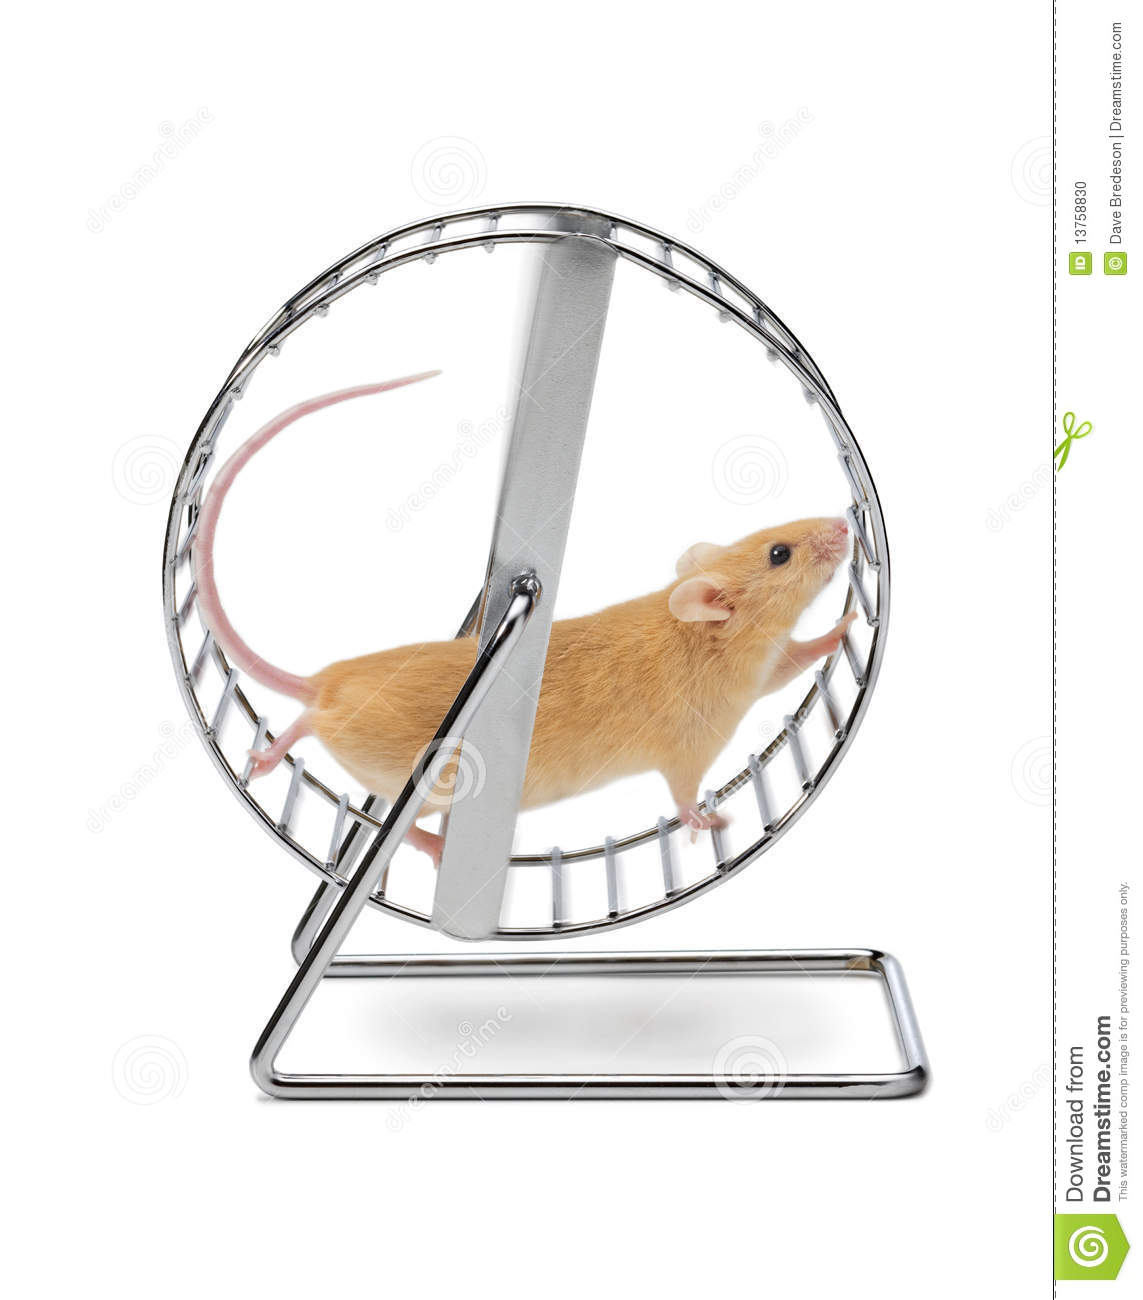 Mouse Hamster Exercise Wheel Stock Photo.